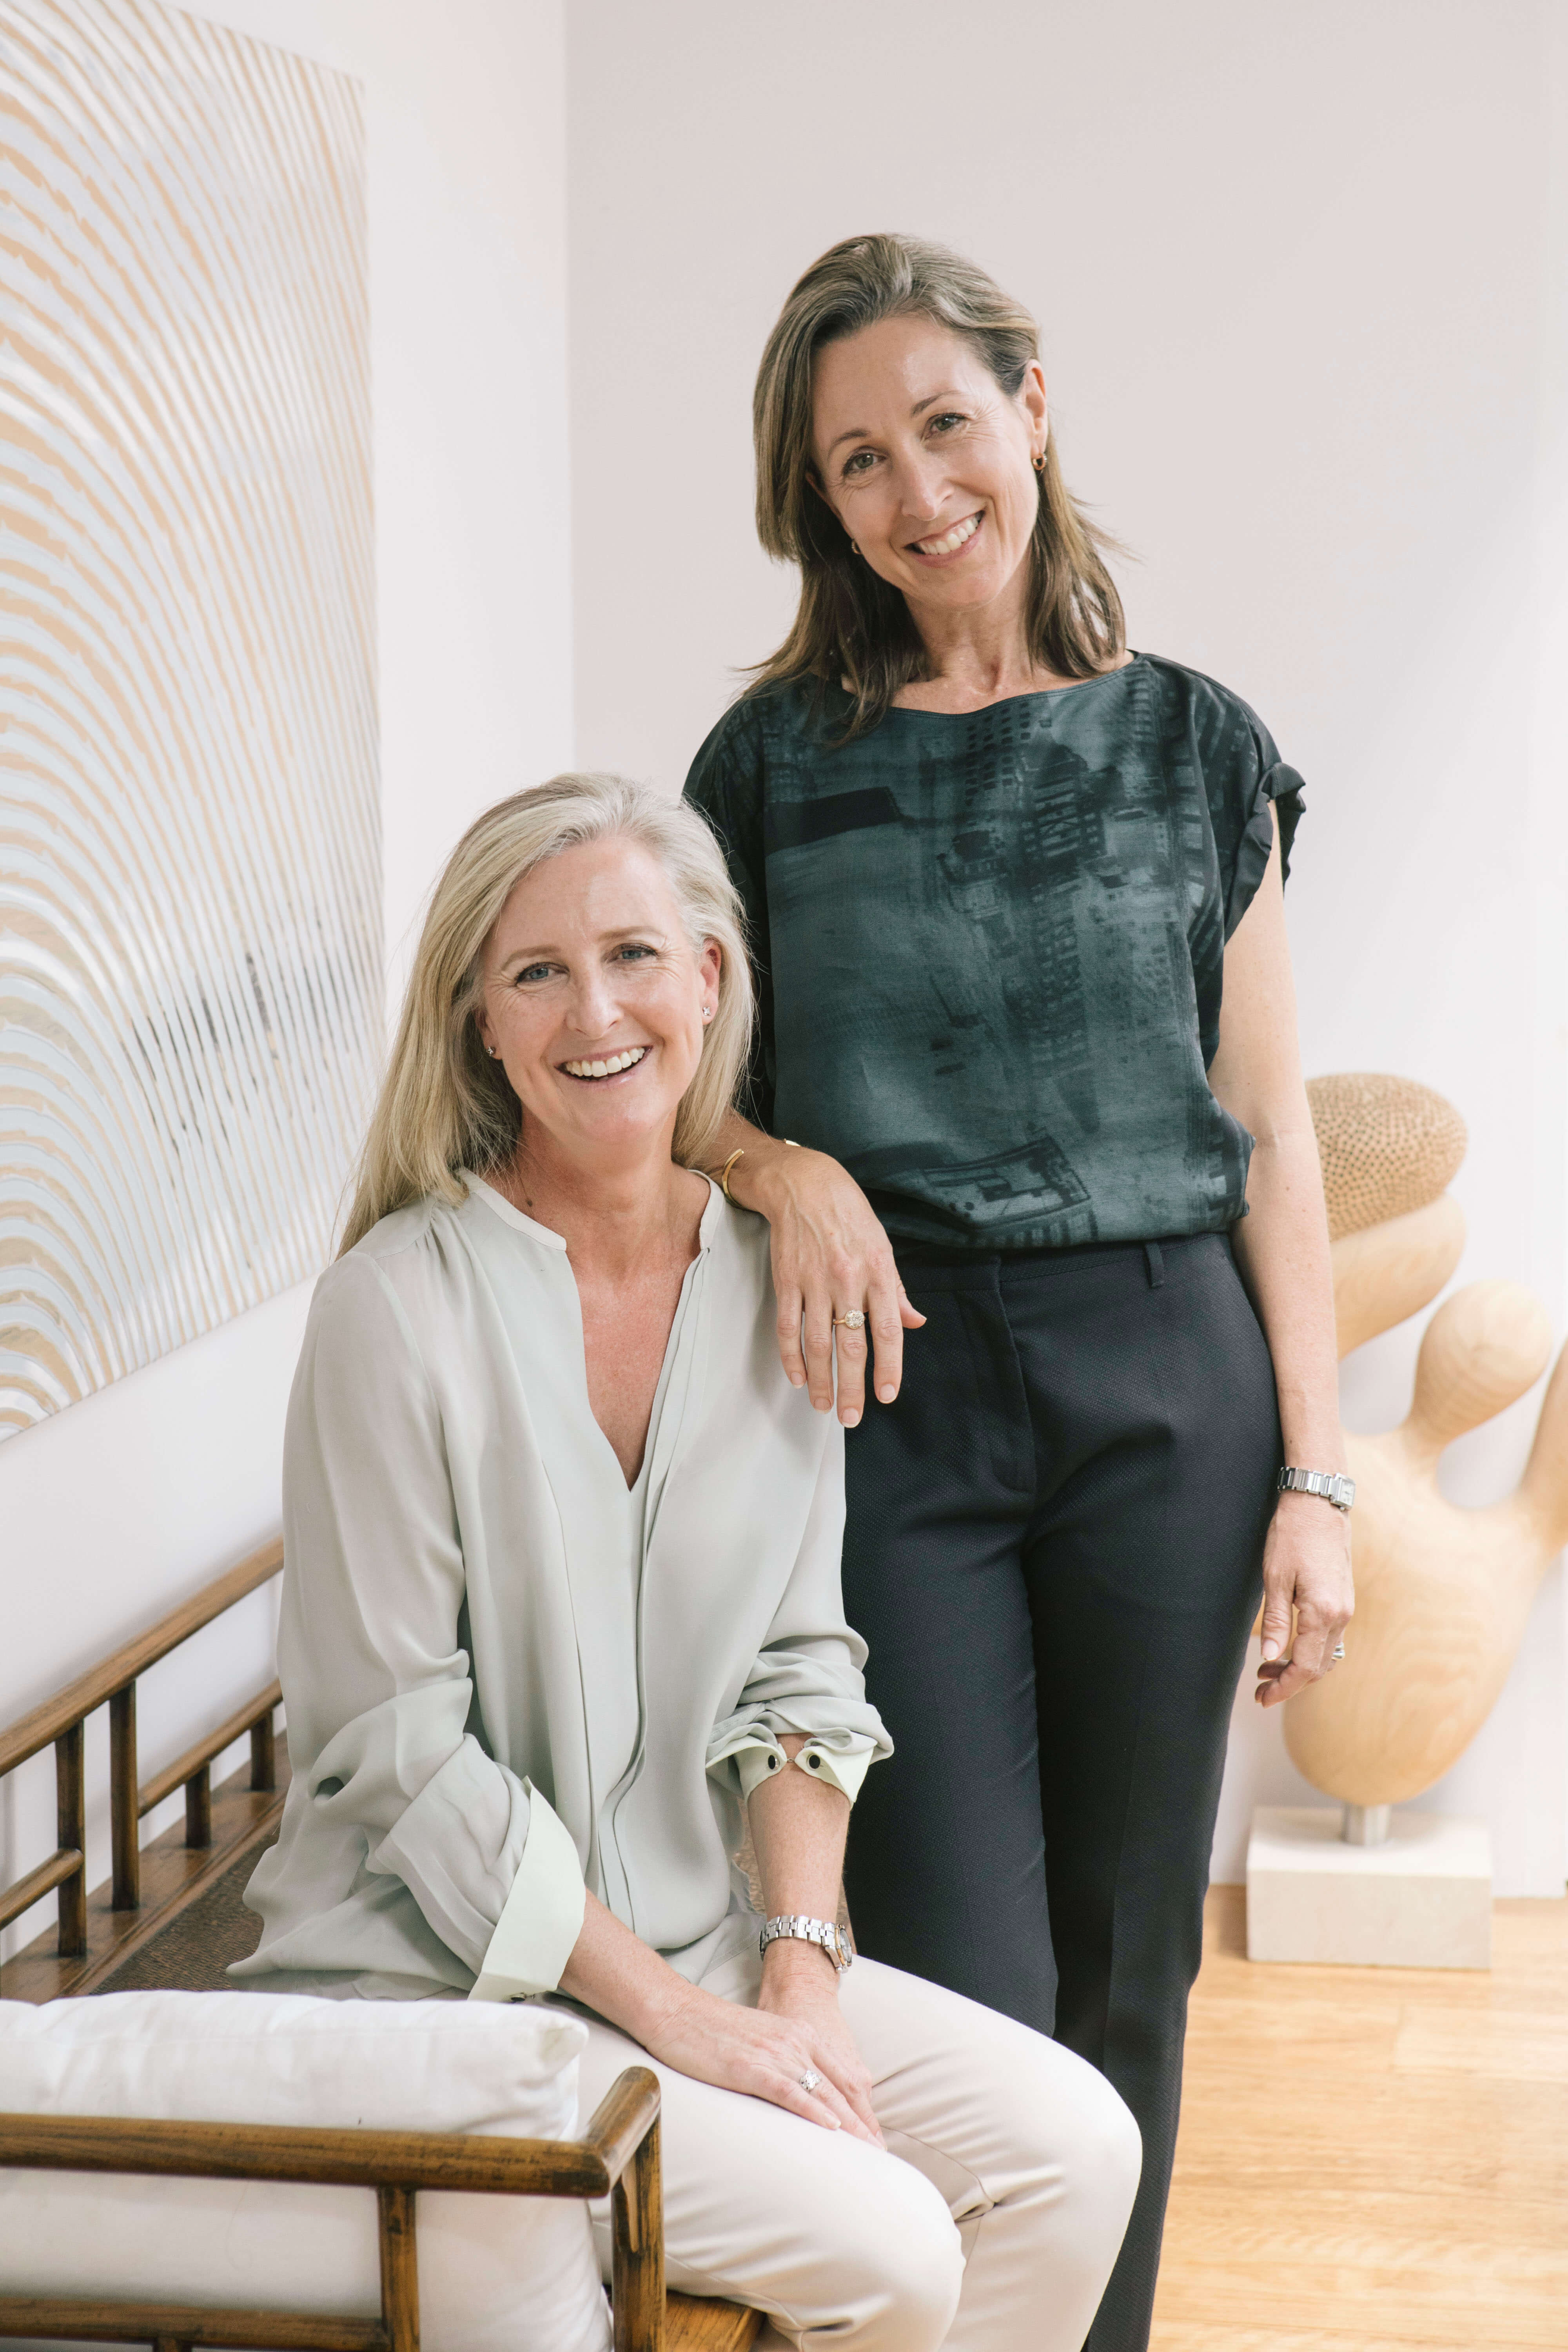 Two Design Lovers About Us photo of Deb Achhorner and Emilia Harrison